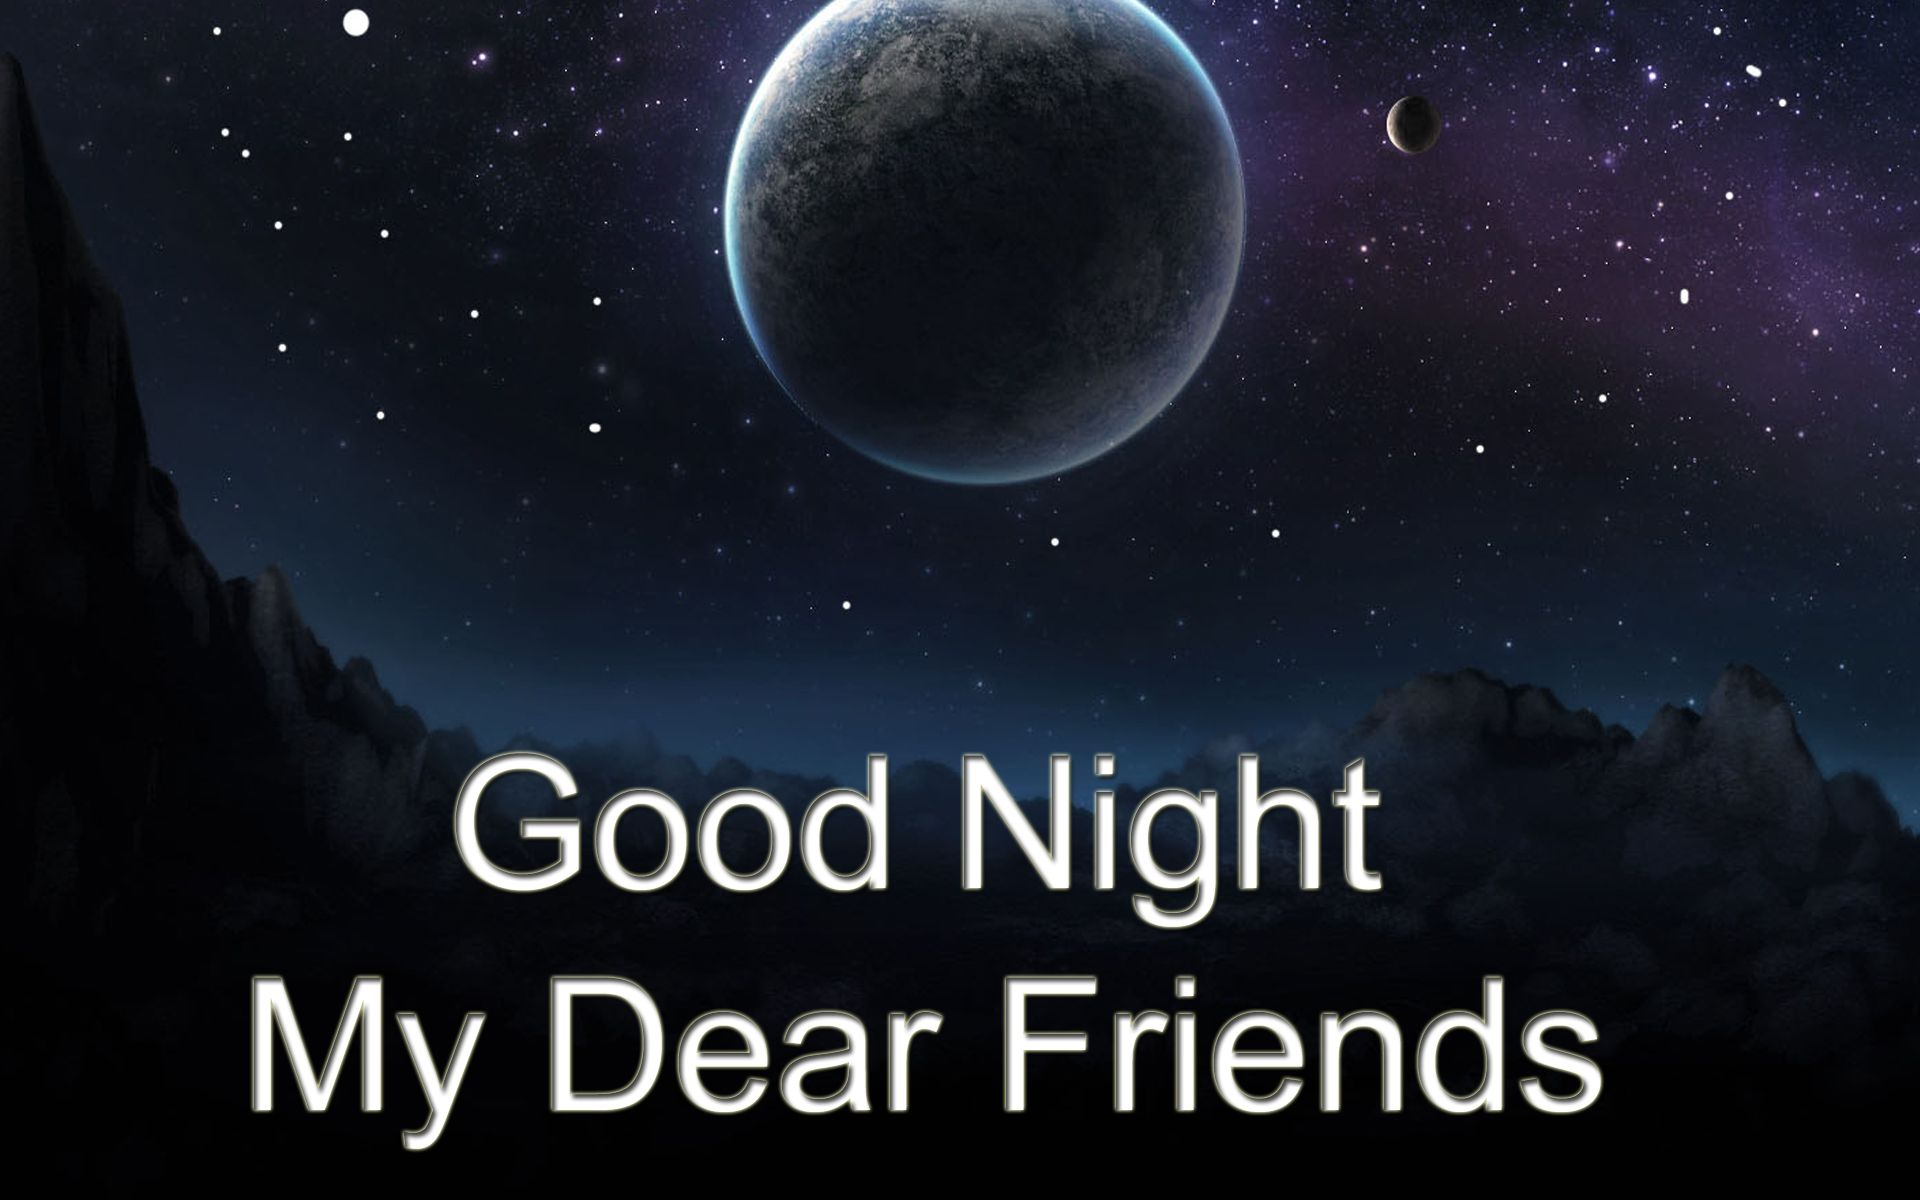 Night Good friends images pictures photos